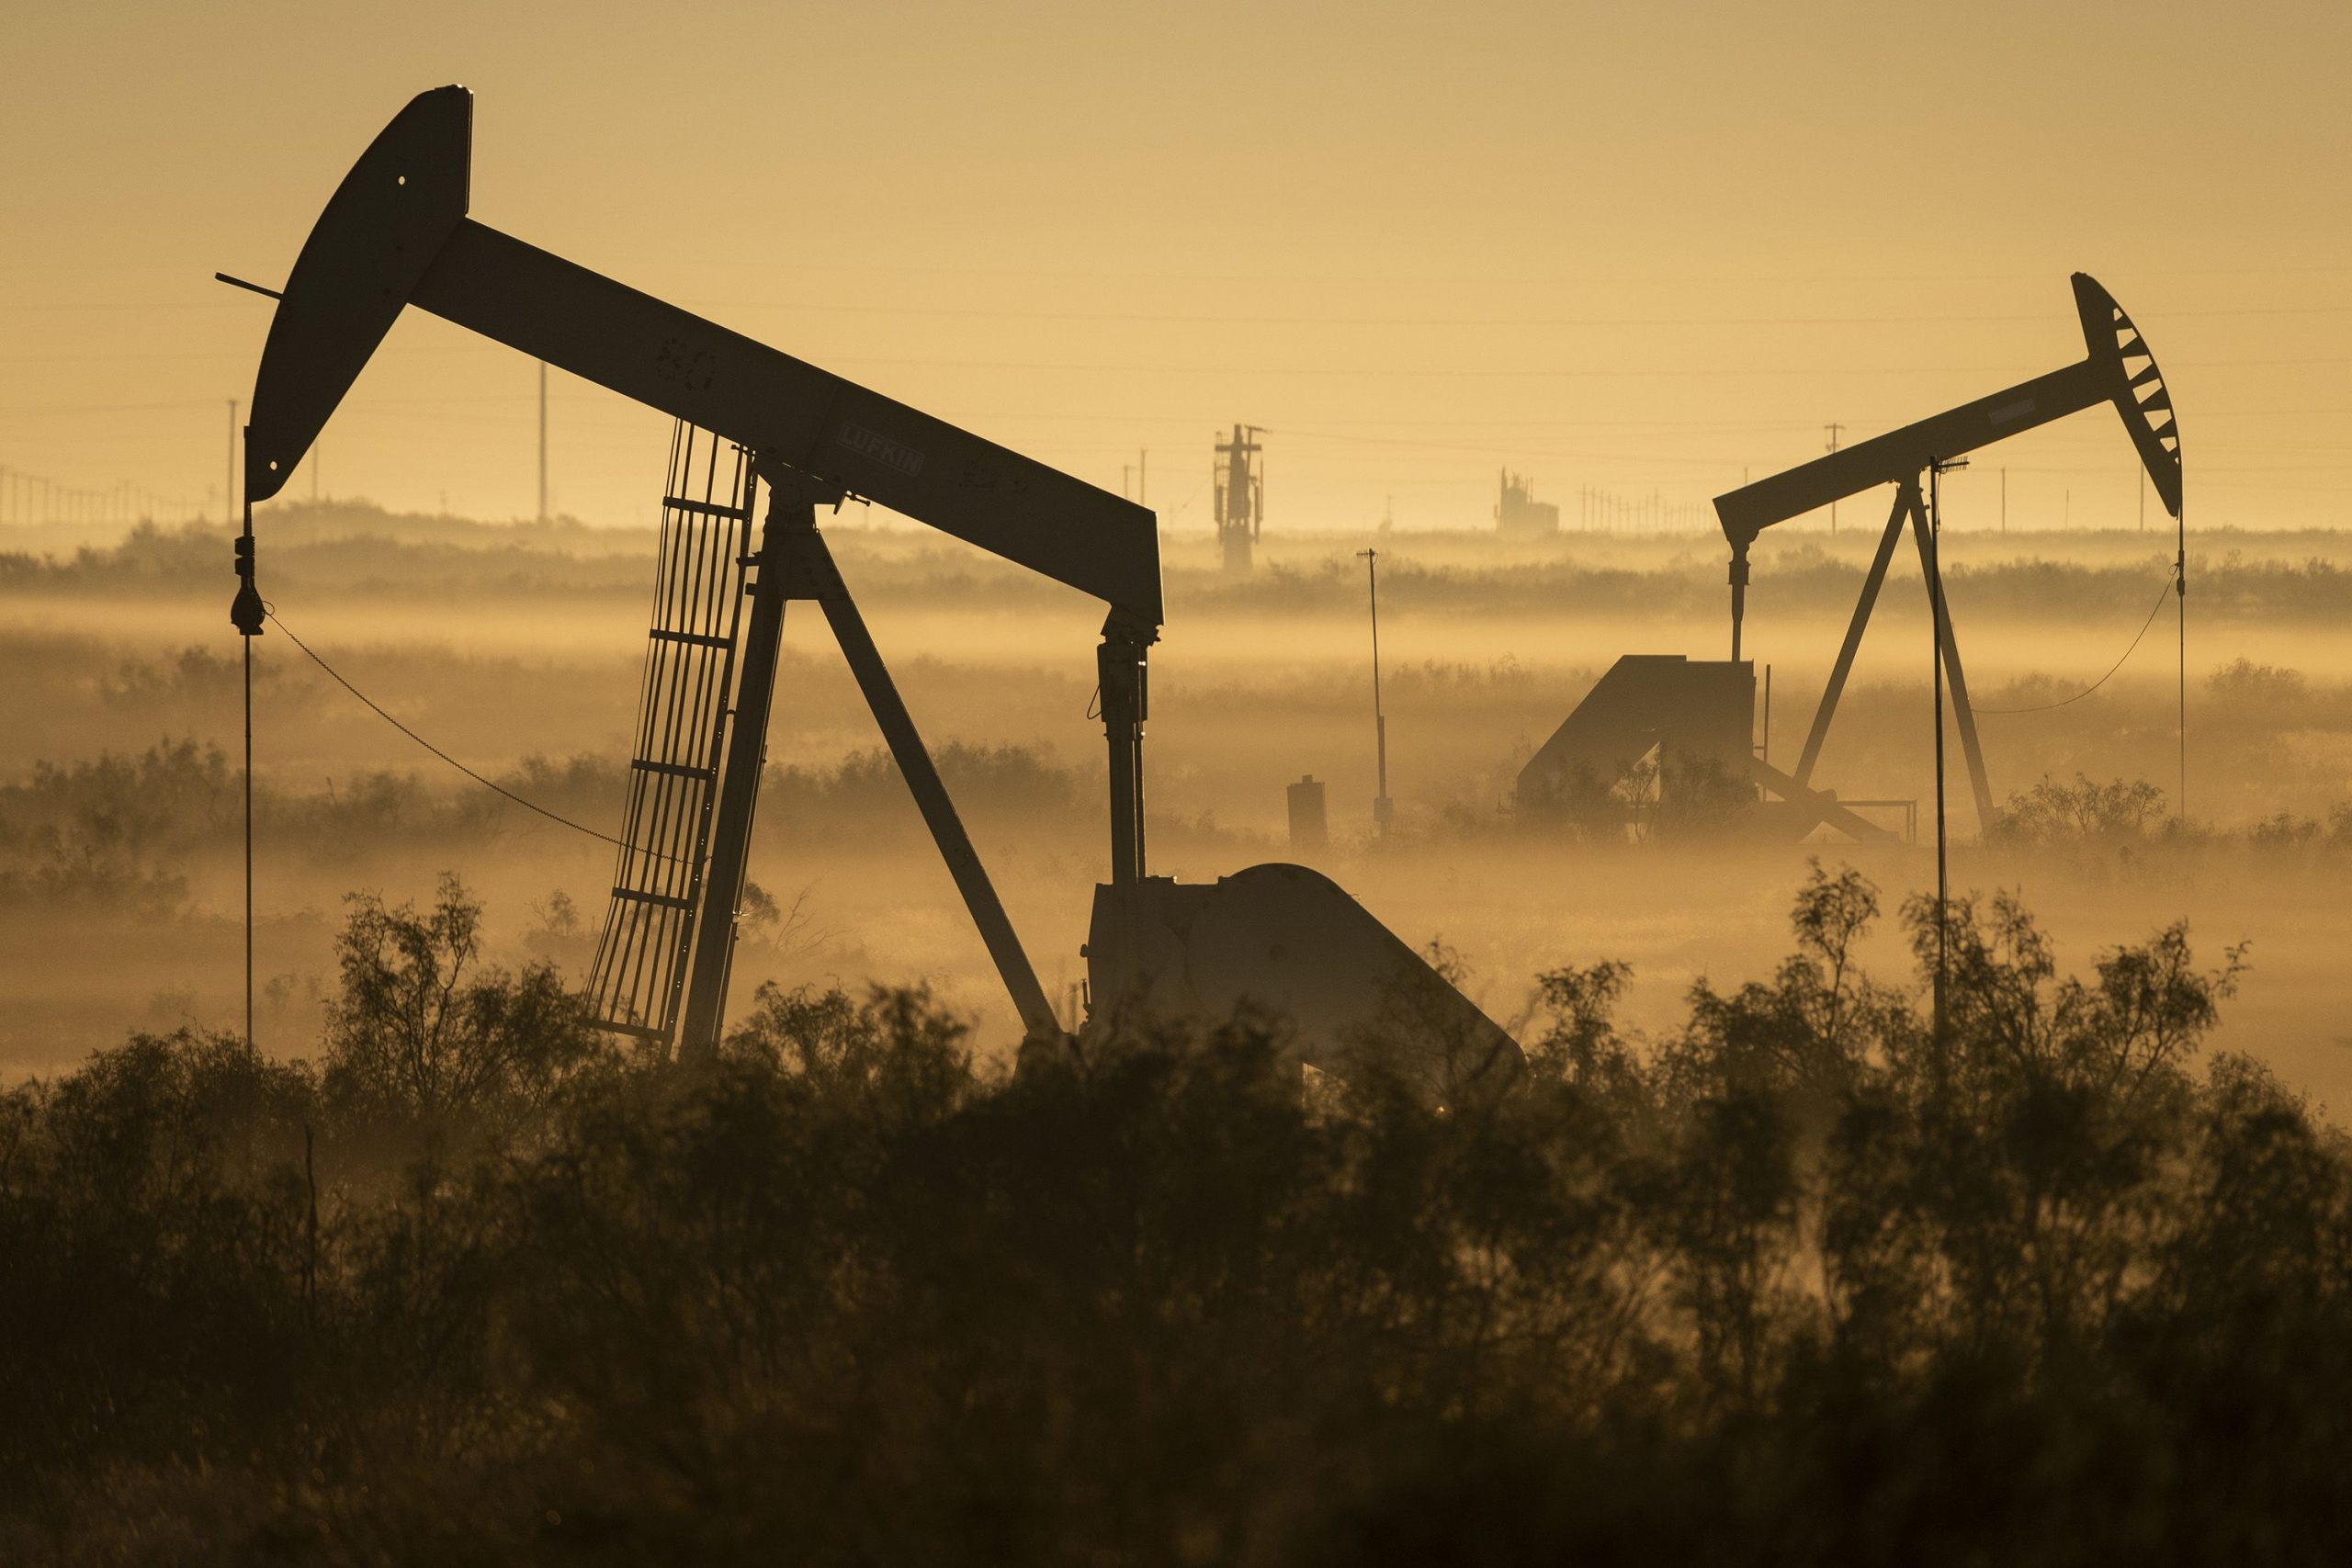 Pumpjacks_mist